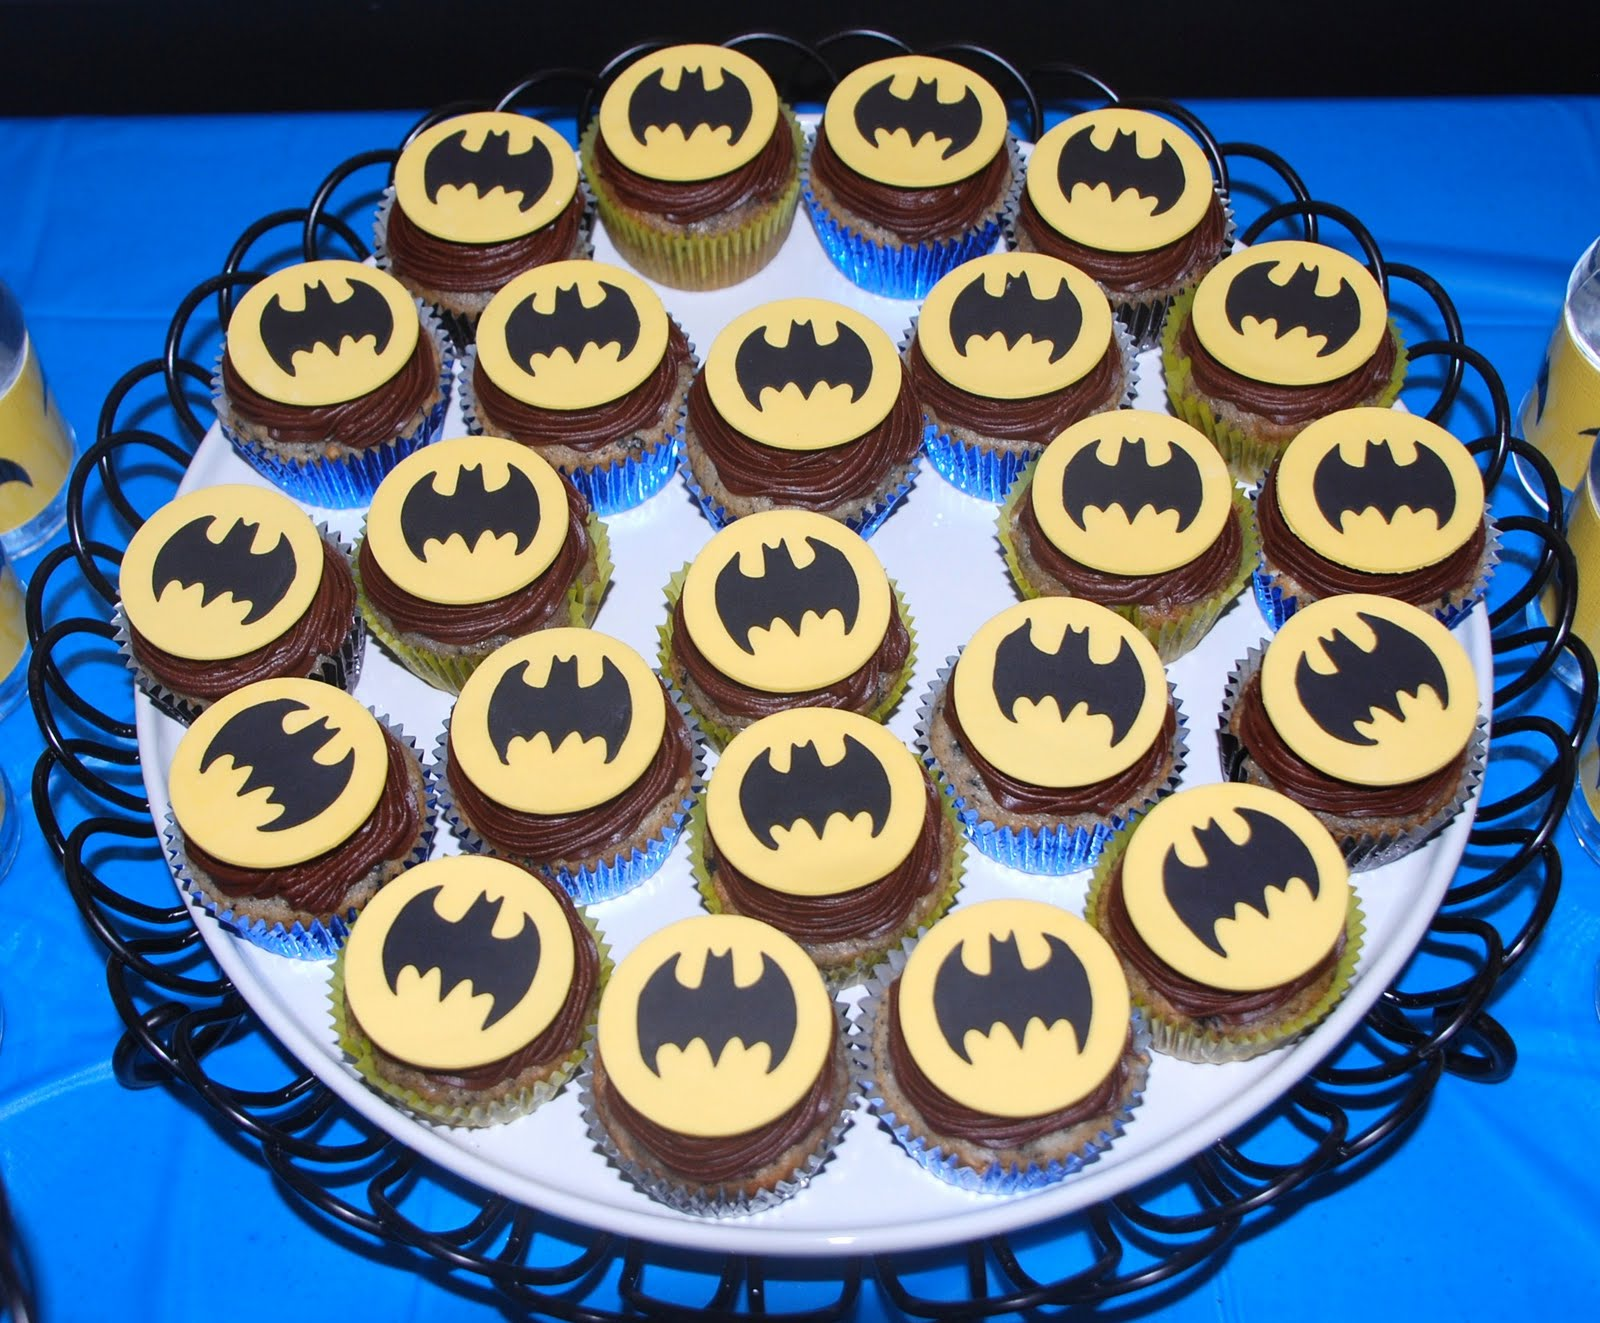 Swell Batman Cakes Decoration Ideas Little Birthday Cakes Personalised Birthday Cards Cominlily Jamesorg